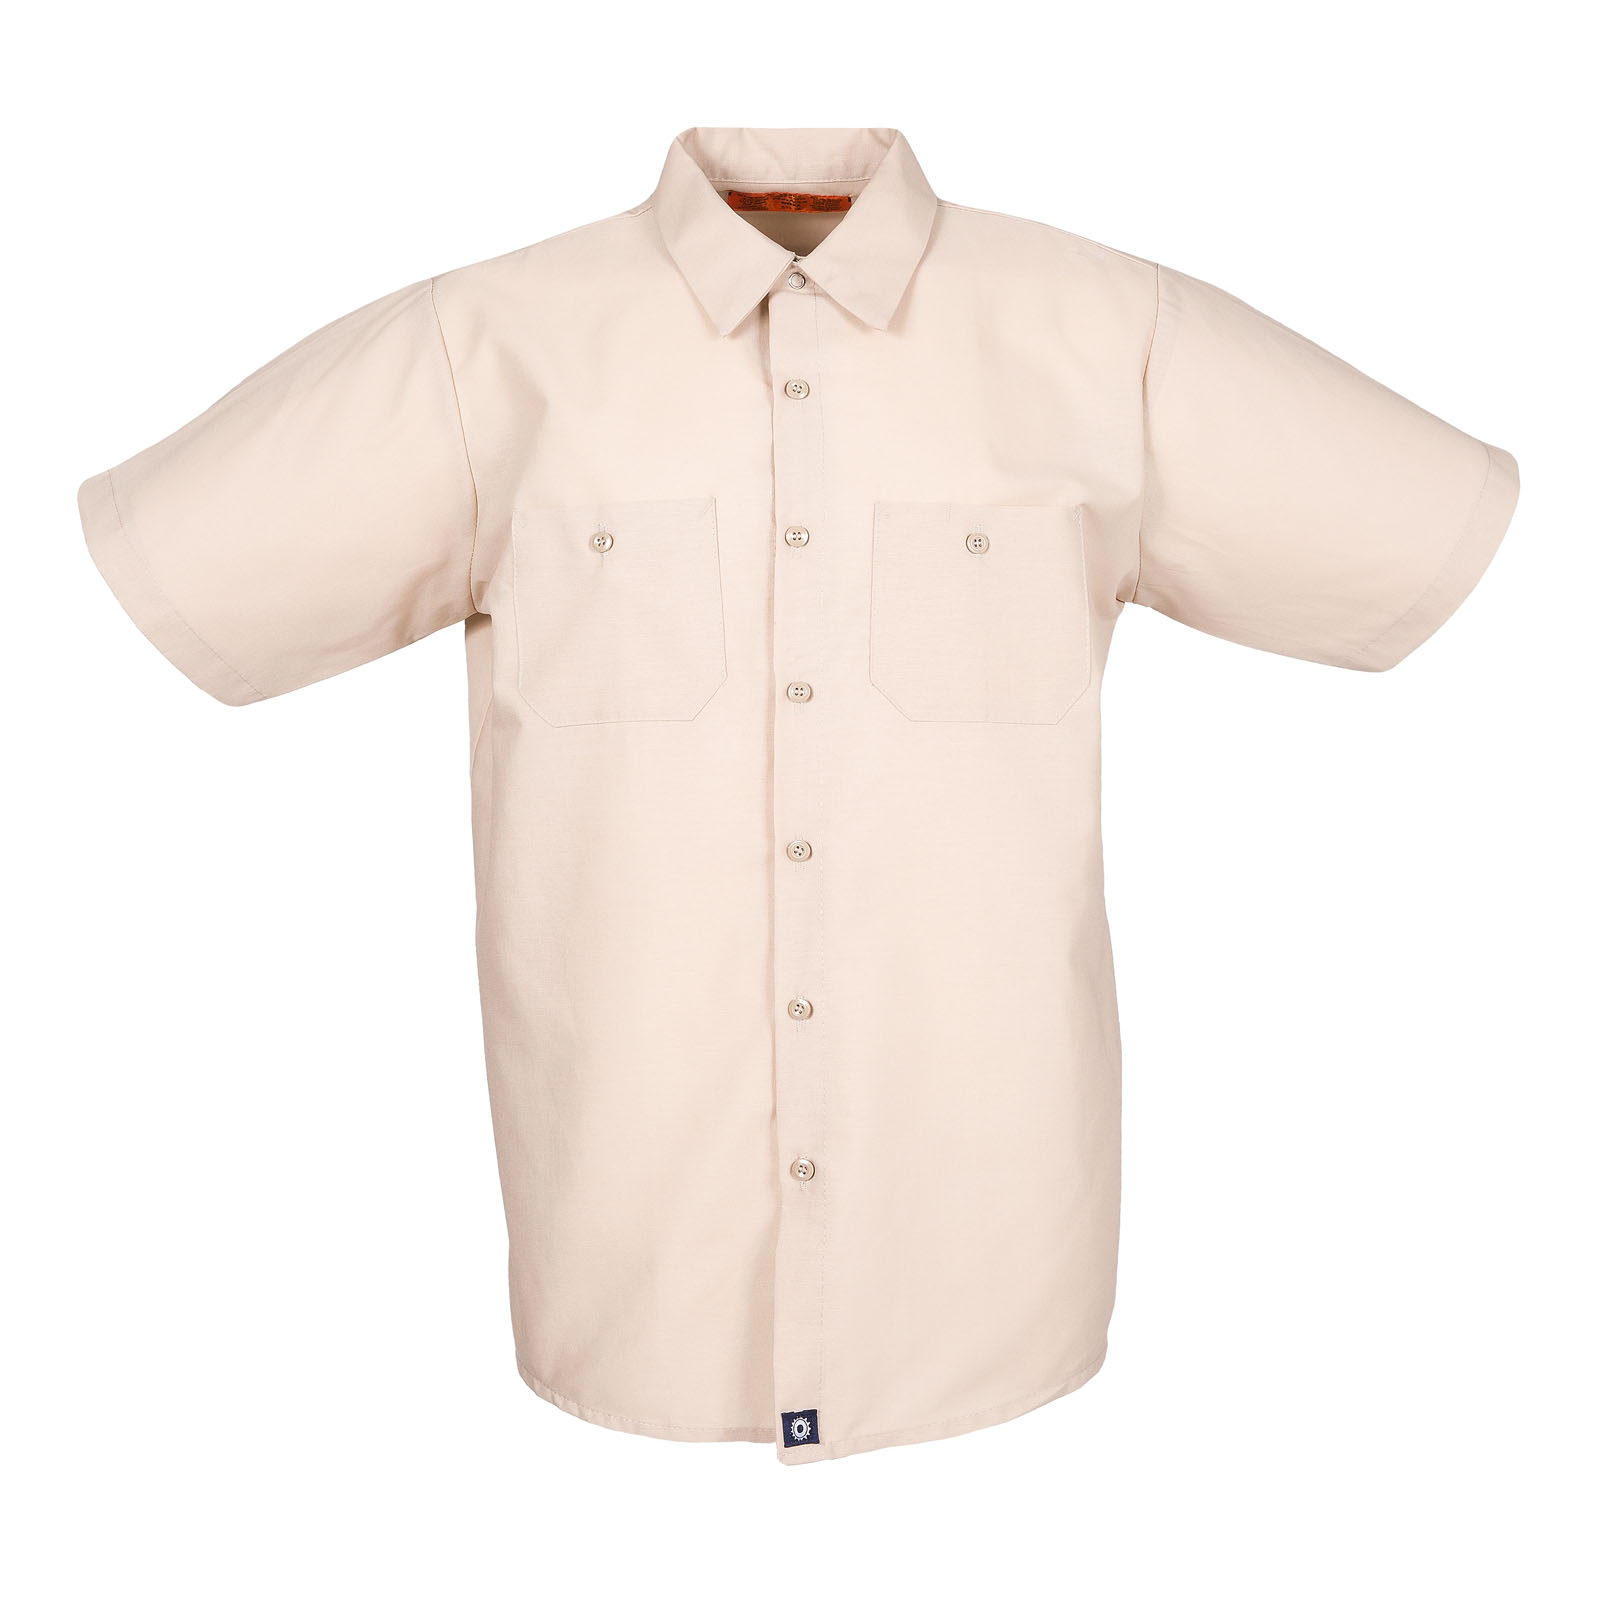 S12TA-Industrial Men's Shirt, Short Sleeves, 65/35